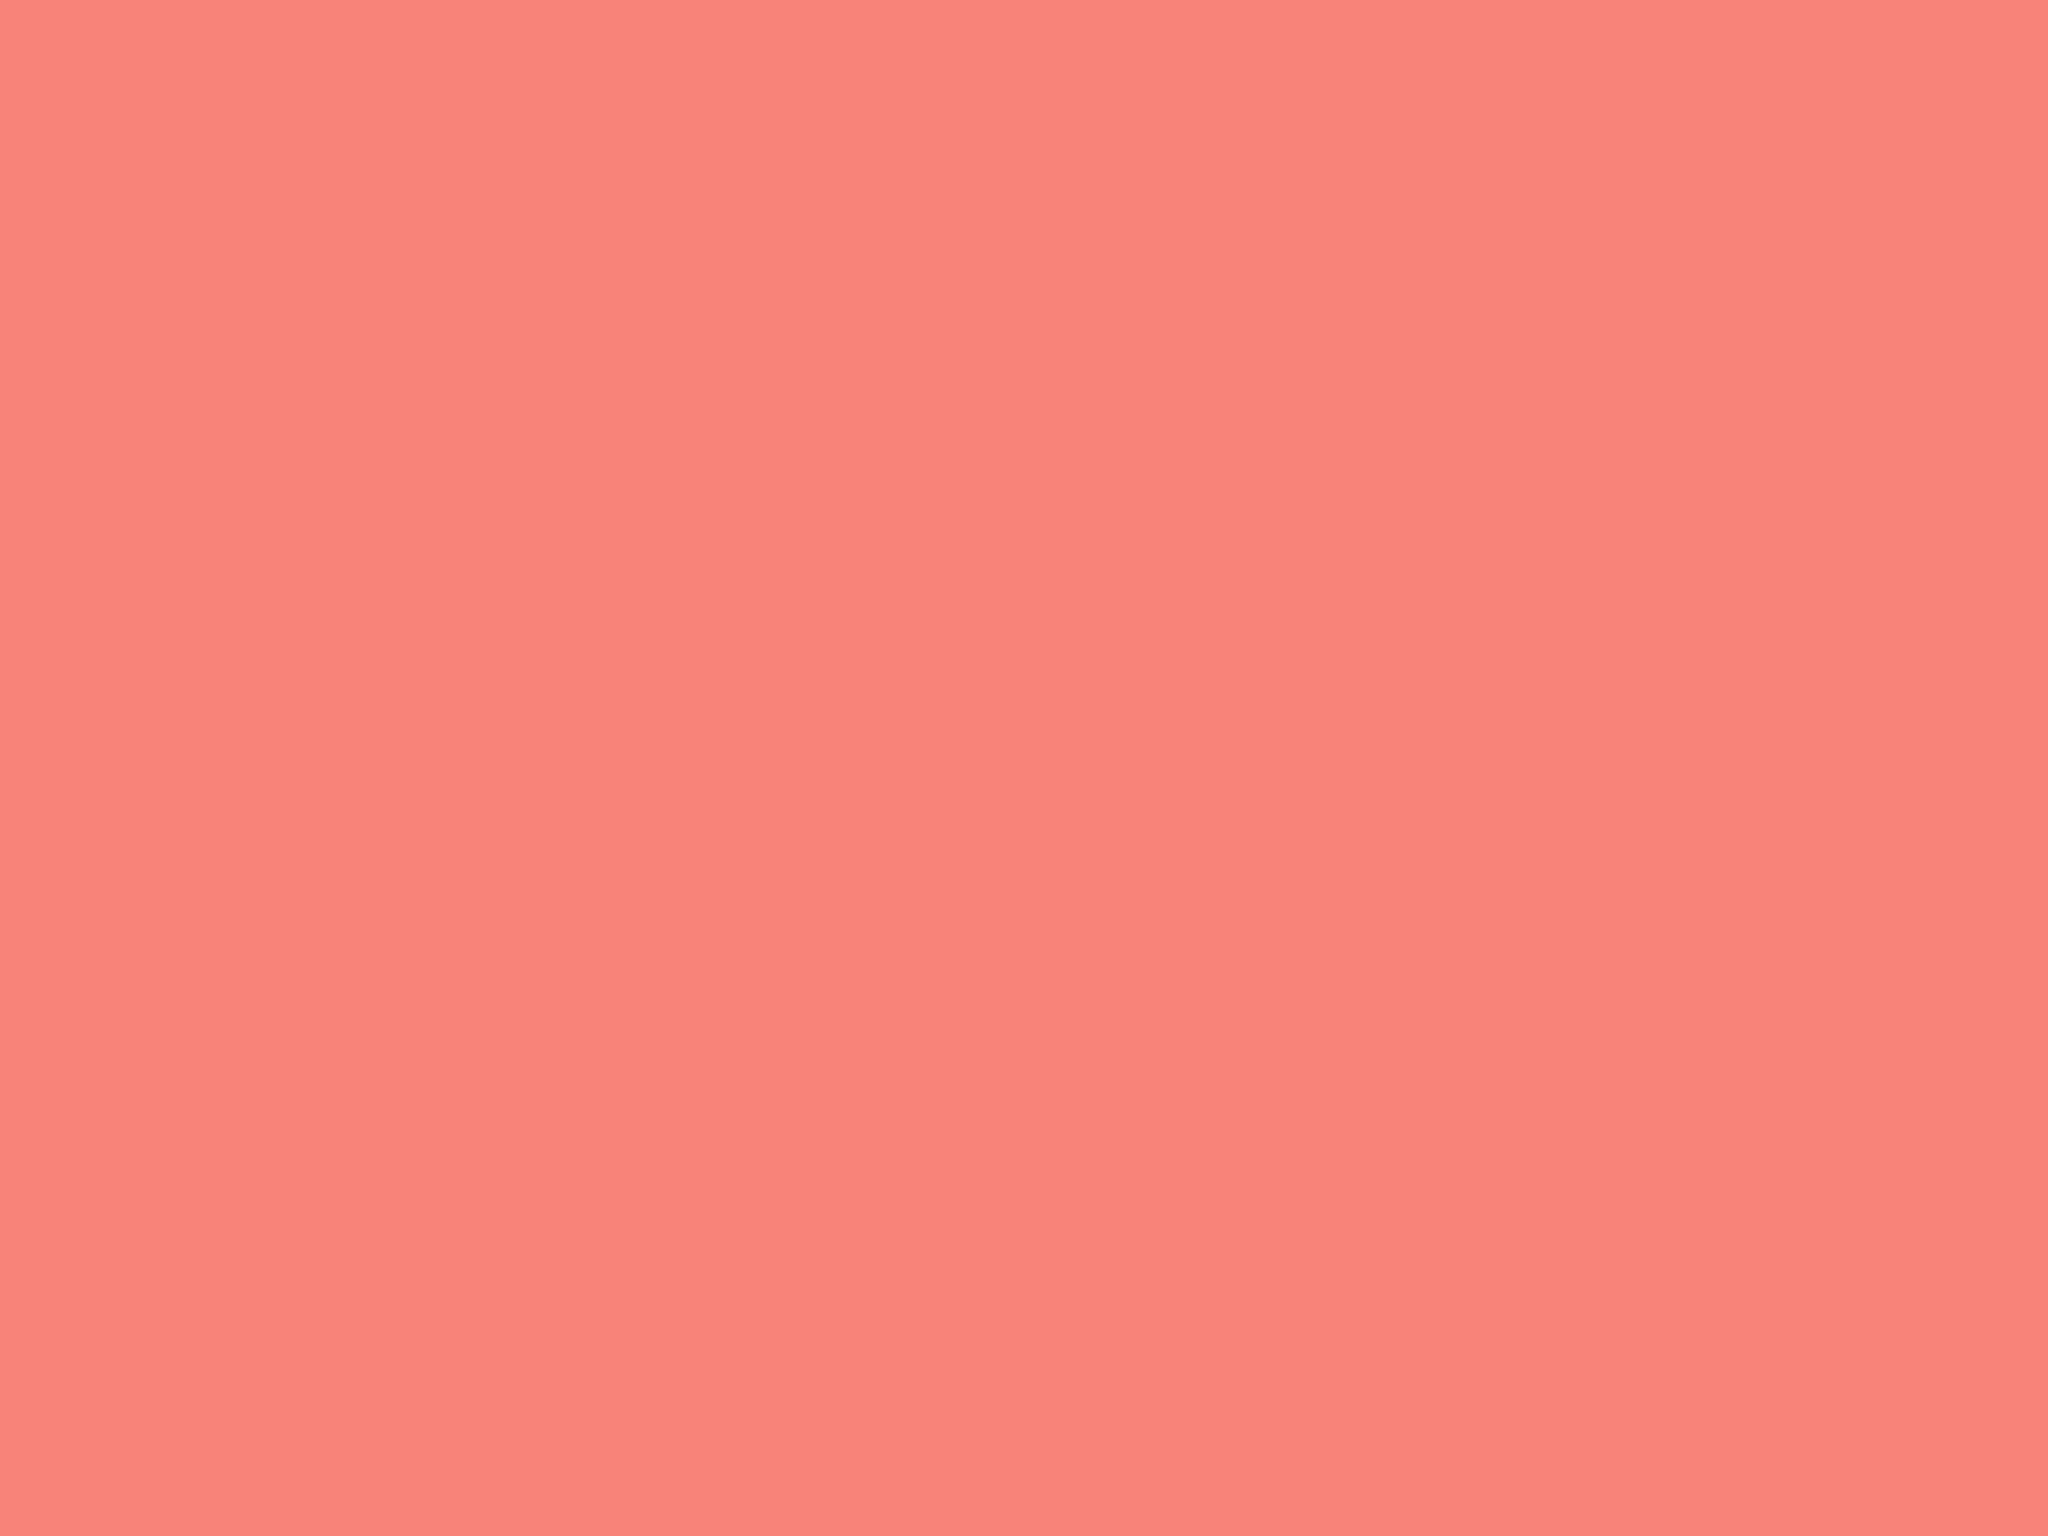 2048x1536 Congo Pink Solid Color Background